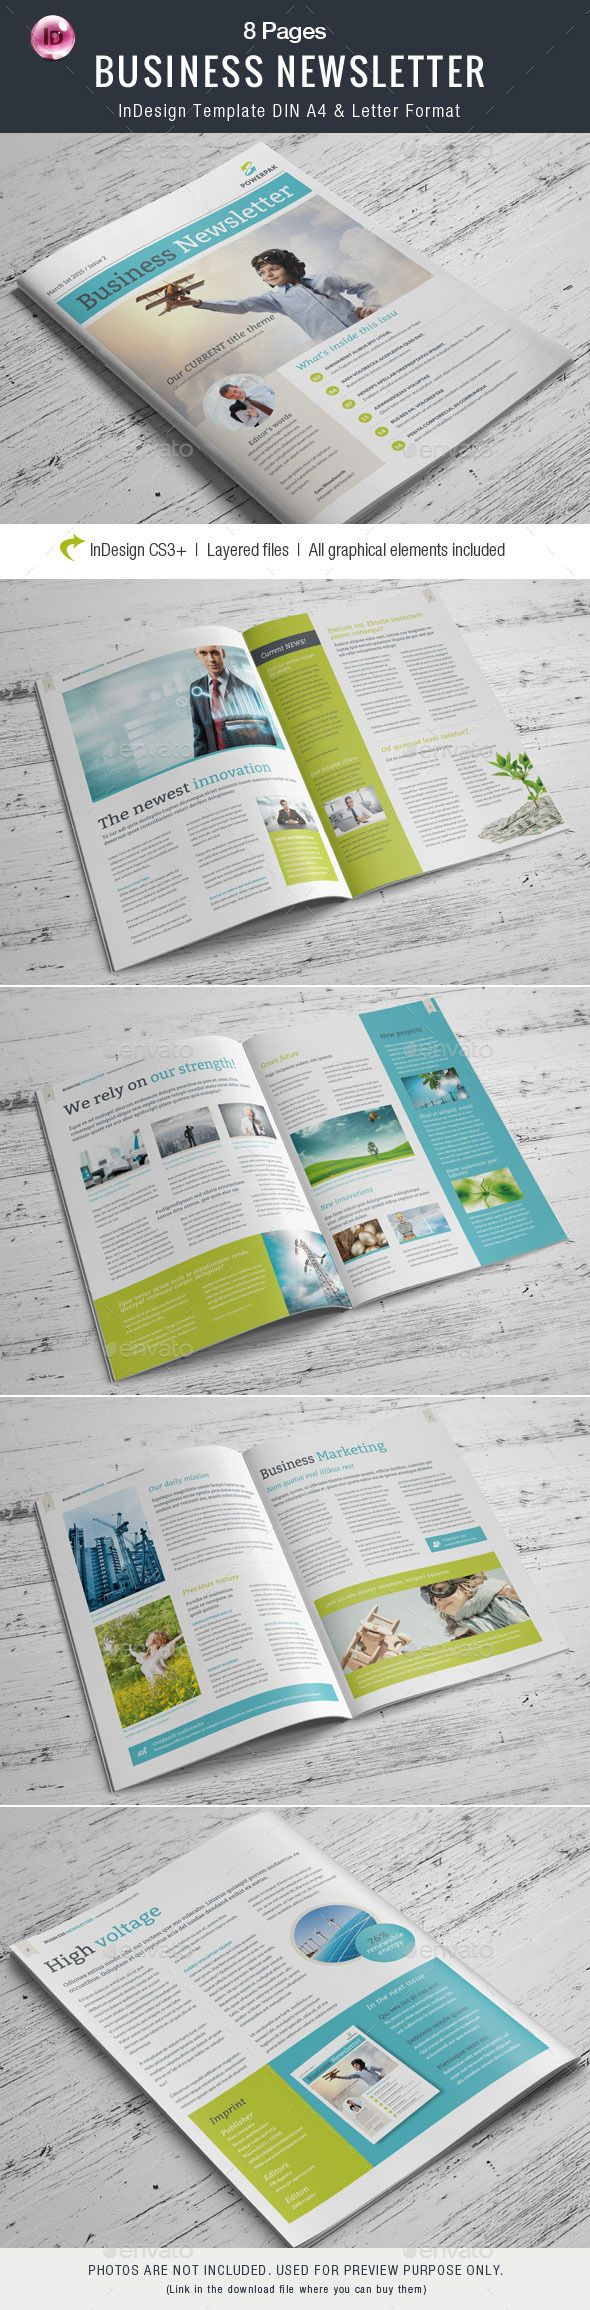 business newsletter 8 pages newsletters print templates download